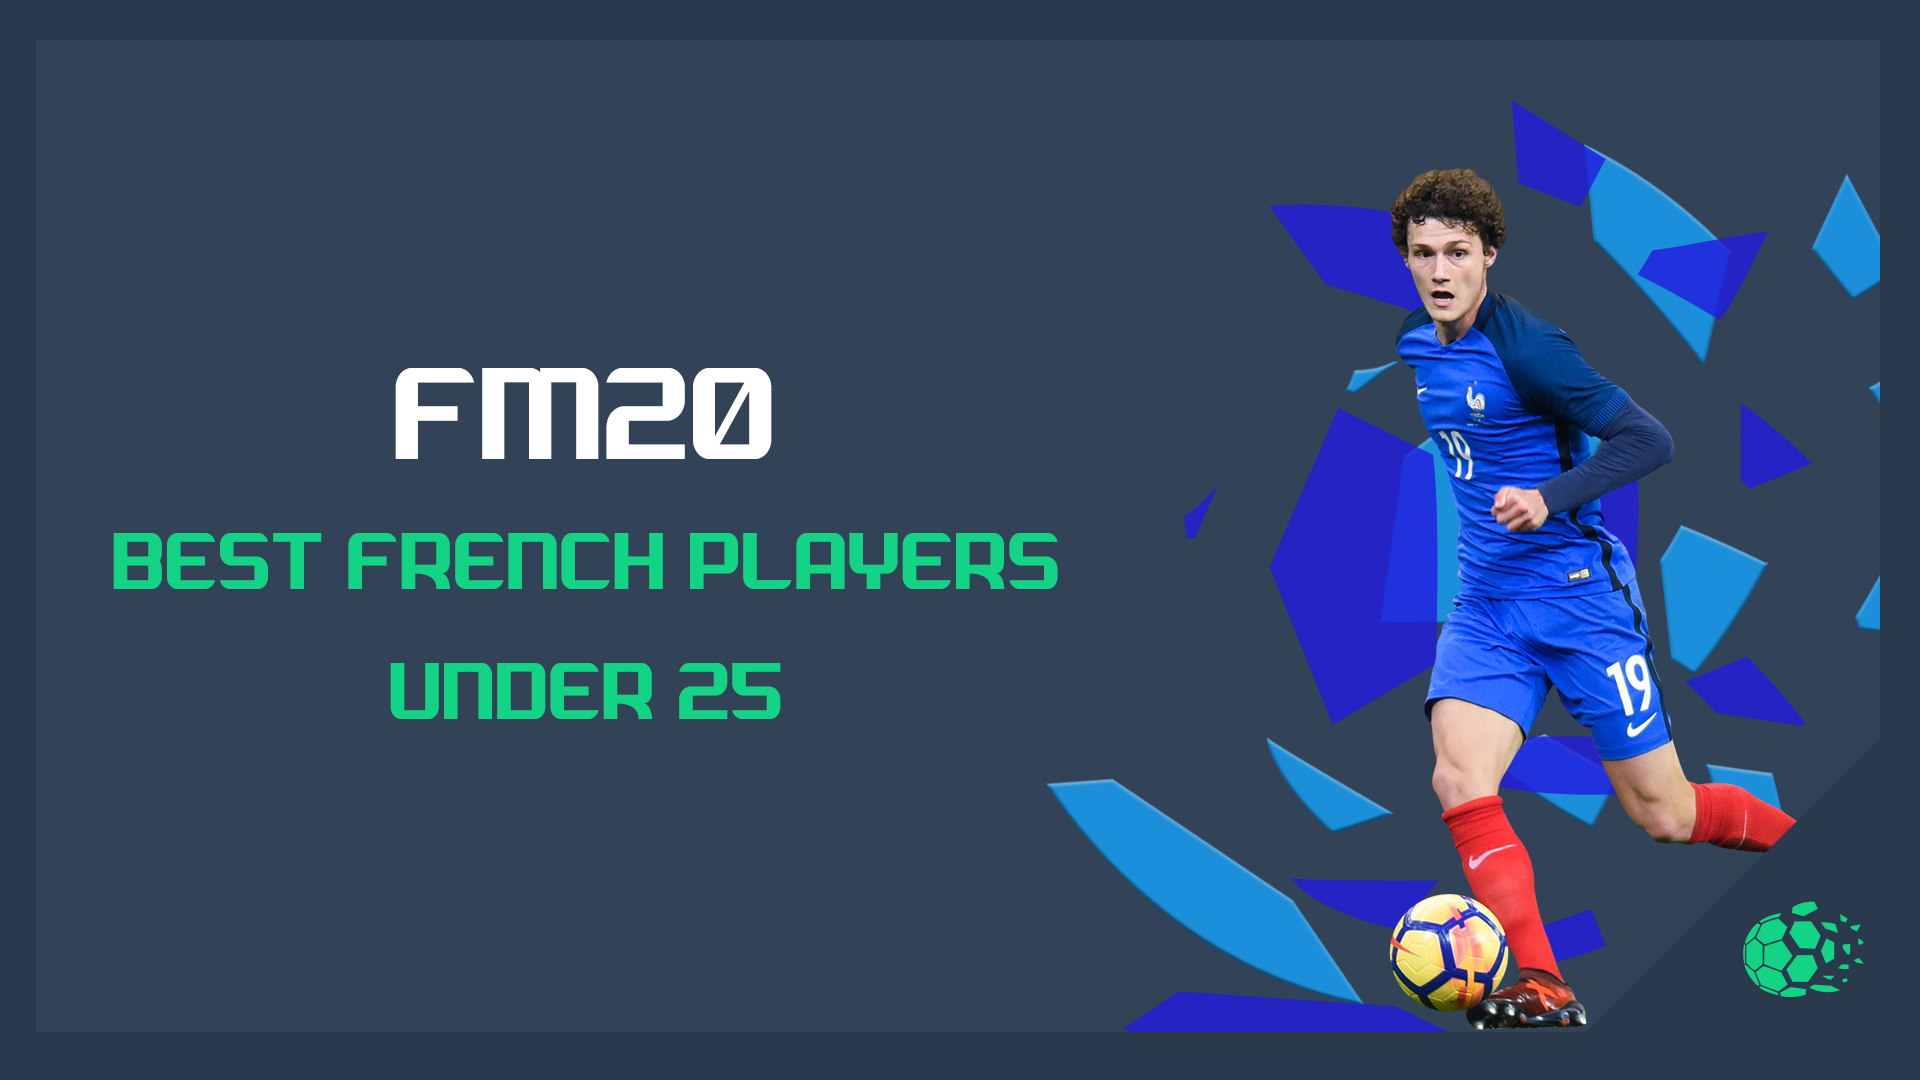 """""""FM20FM20: Best French Player Under 25"""" feature image"""